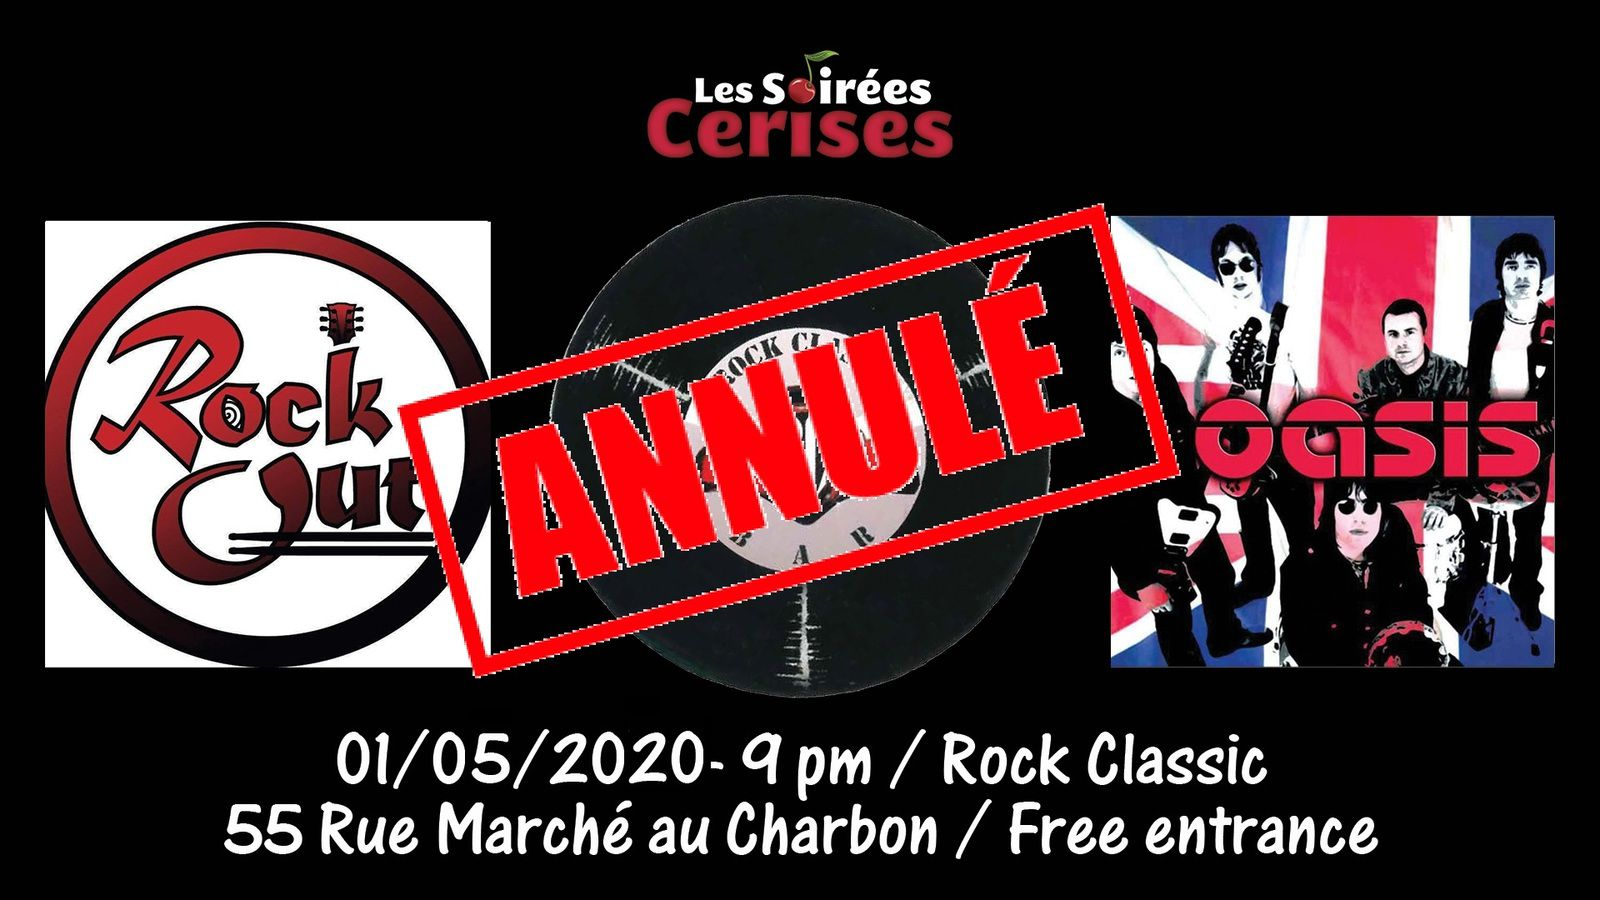 🎵 RockOut plays Oasis (It) @ Rock Classic - 01/05/2020 - annulé